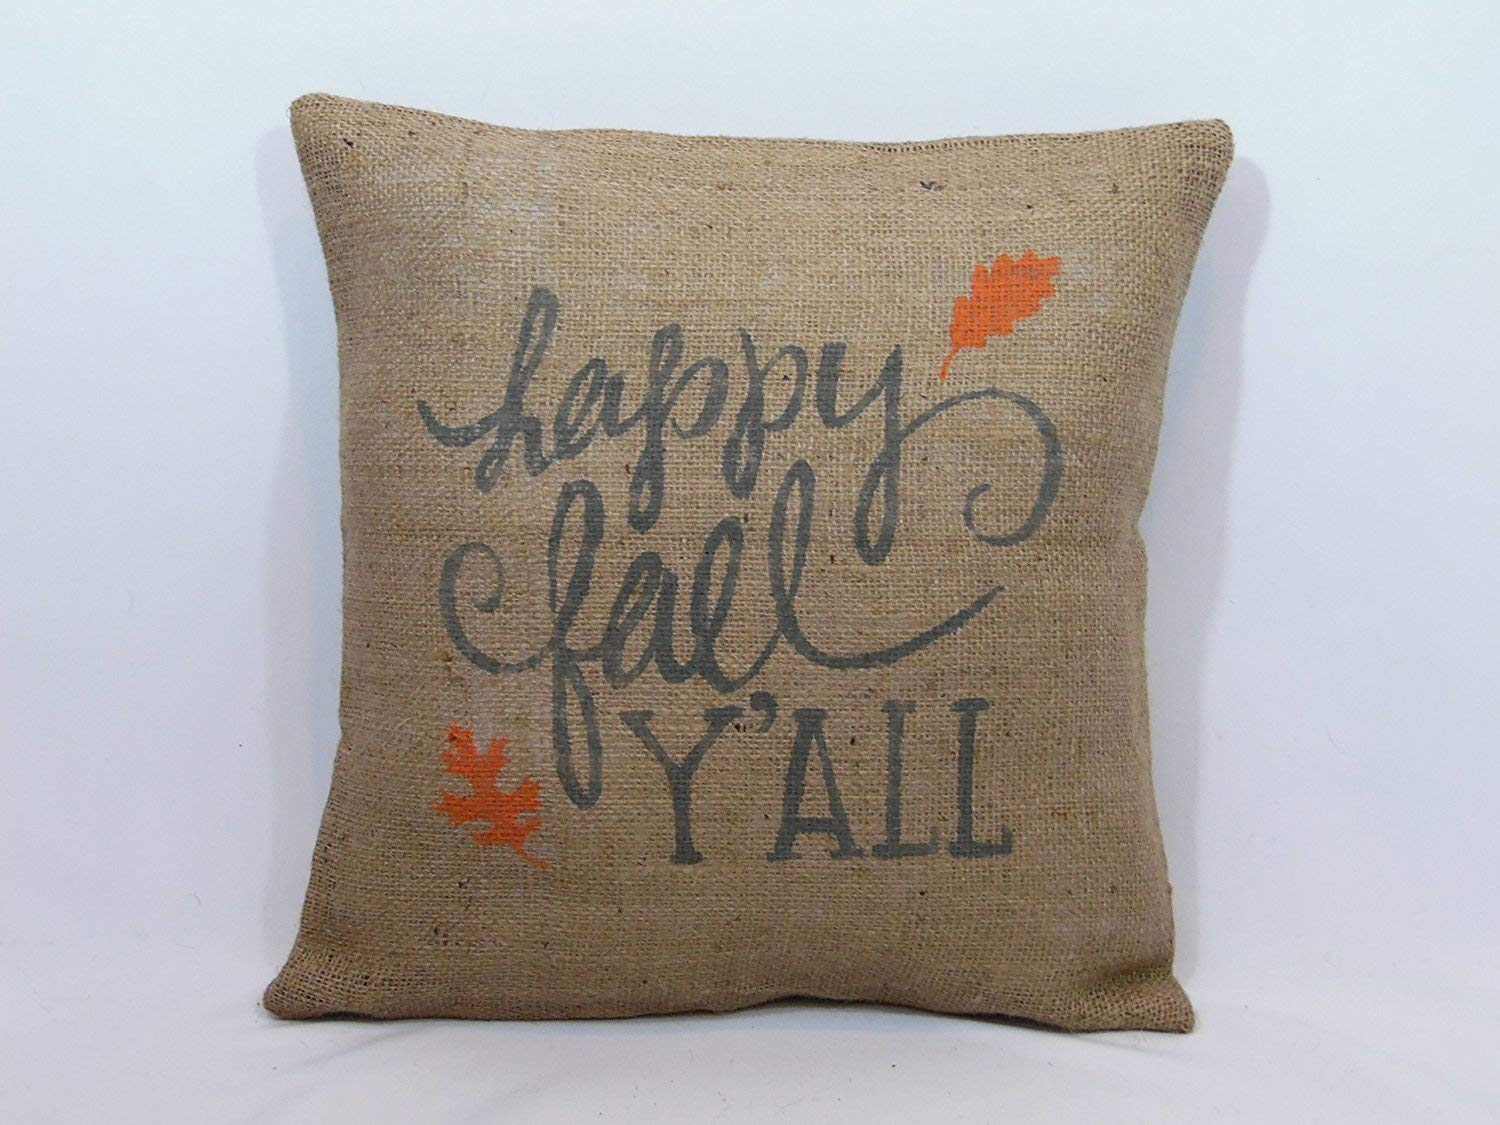 Happy fall Ya'll pillow cover